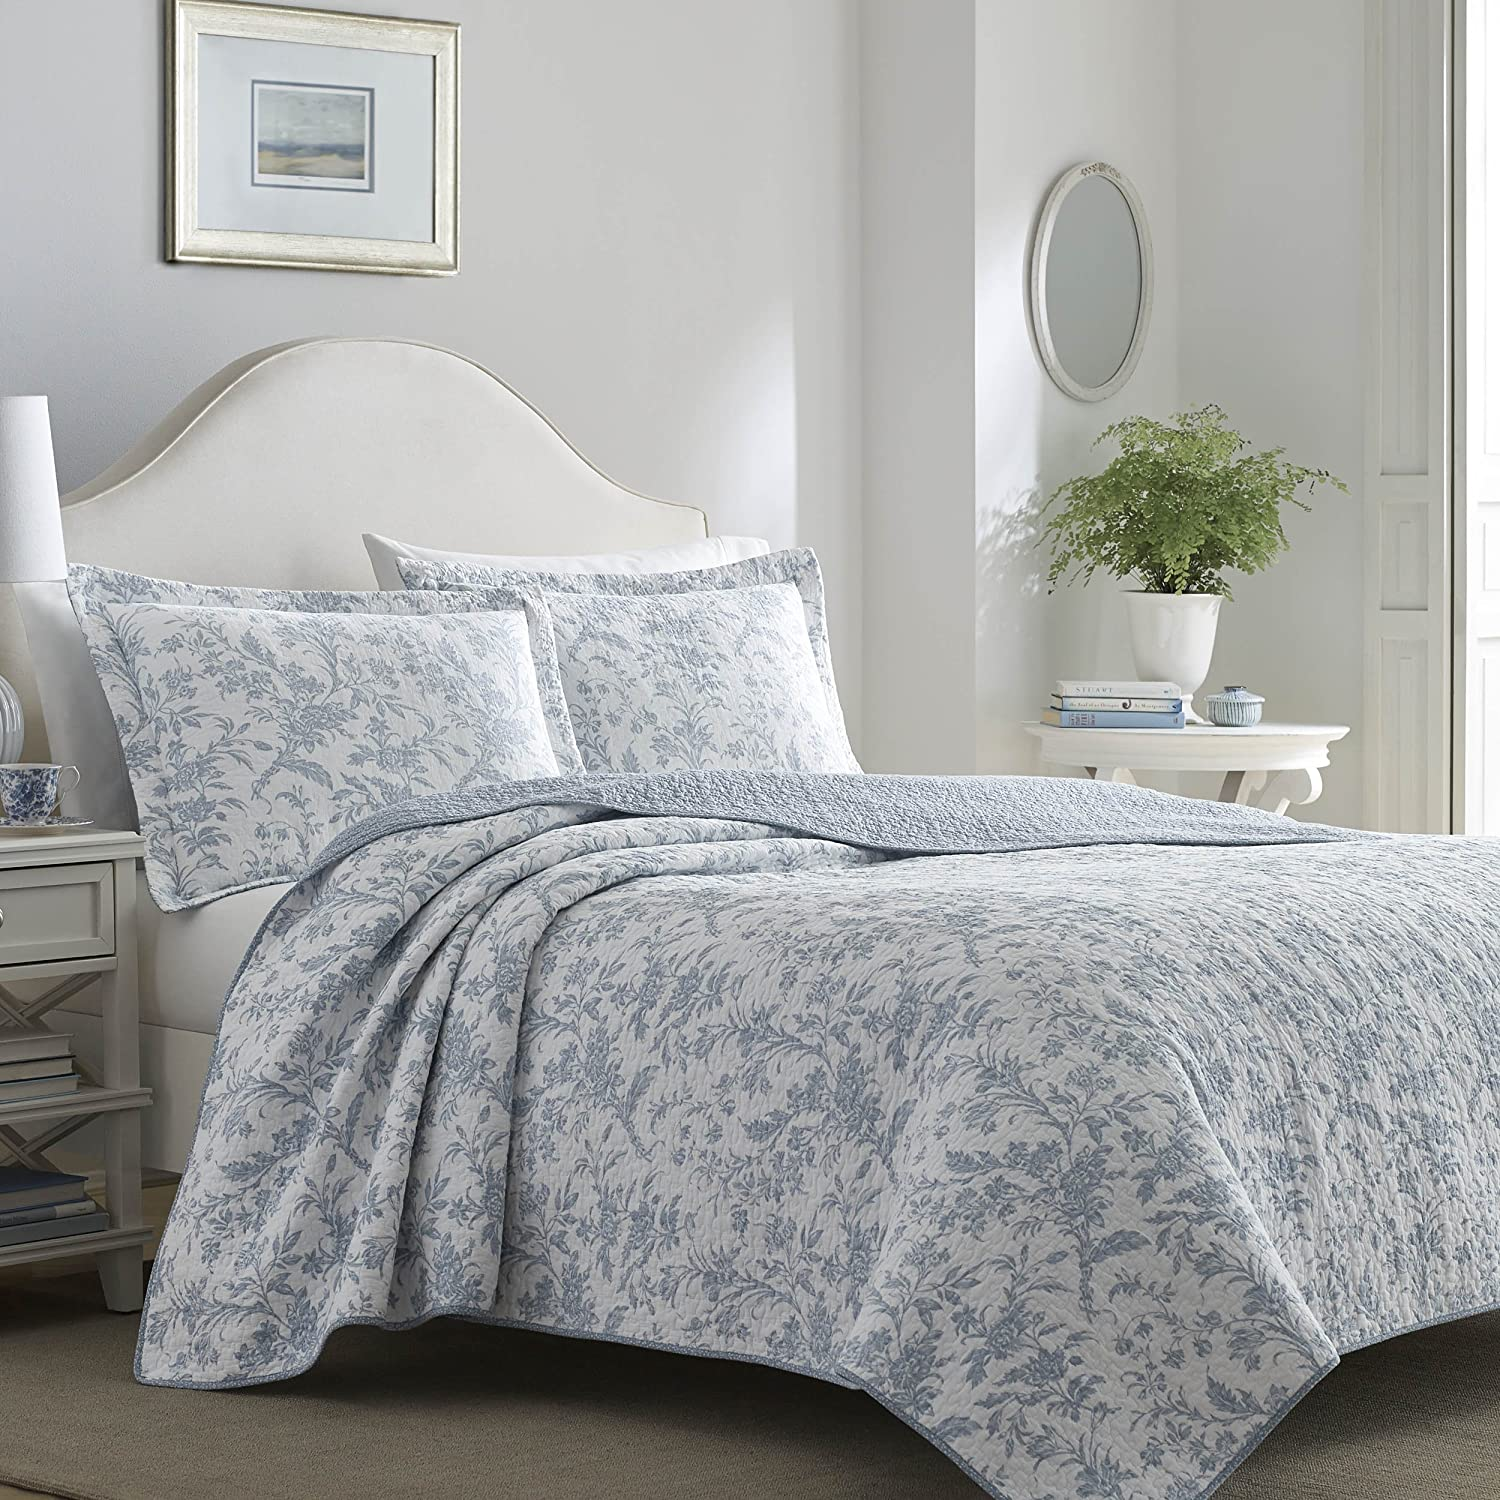 Laura Ashley Amberley Spa Blue Quilt Set, King